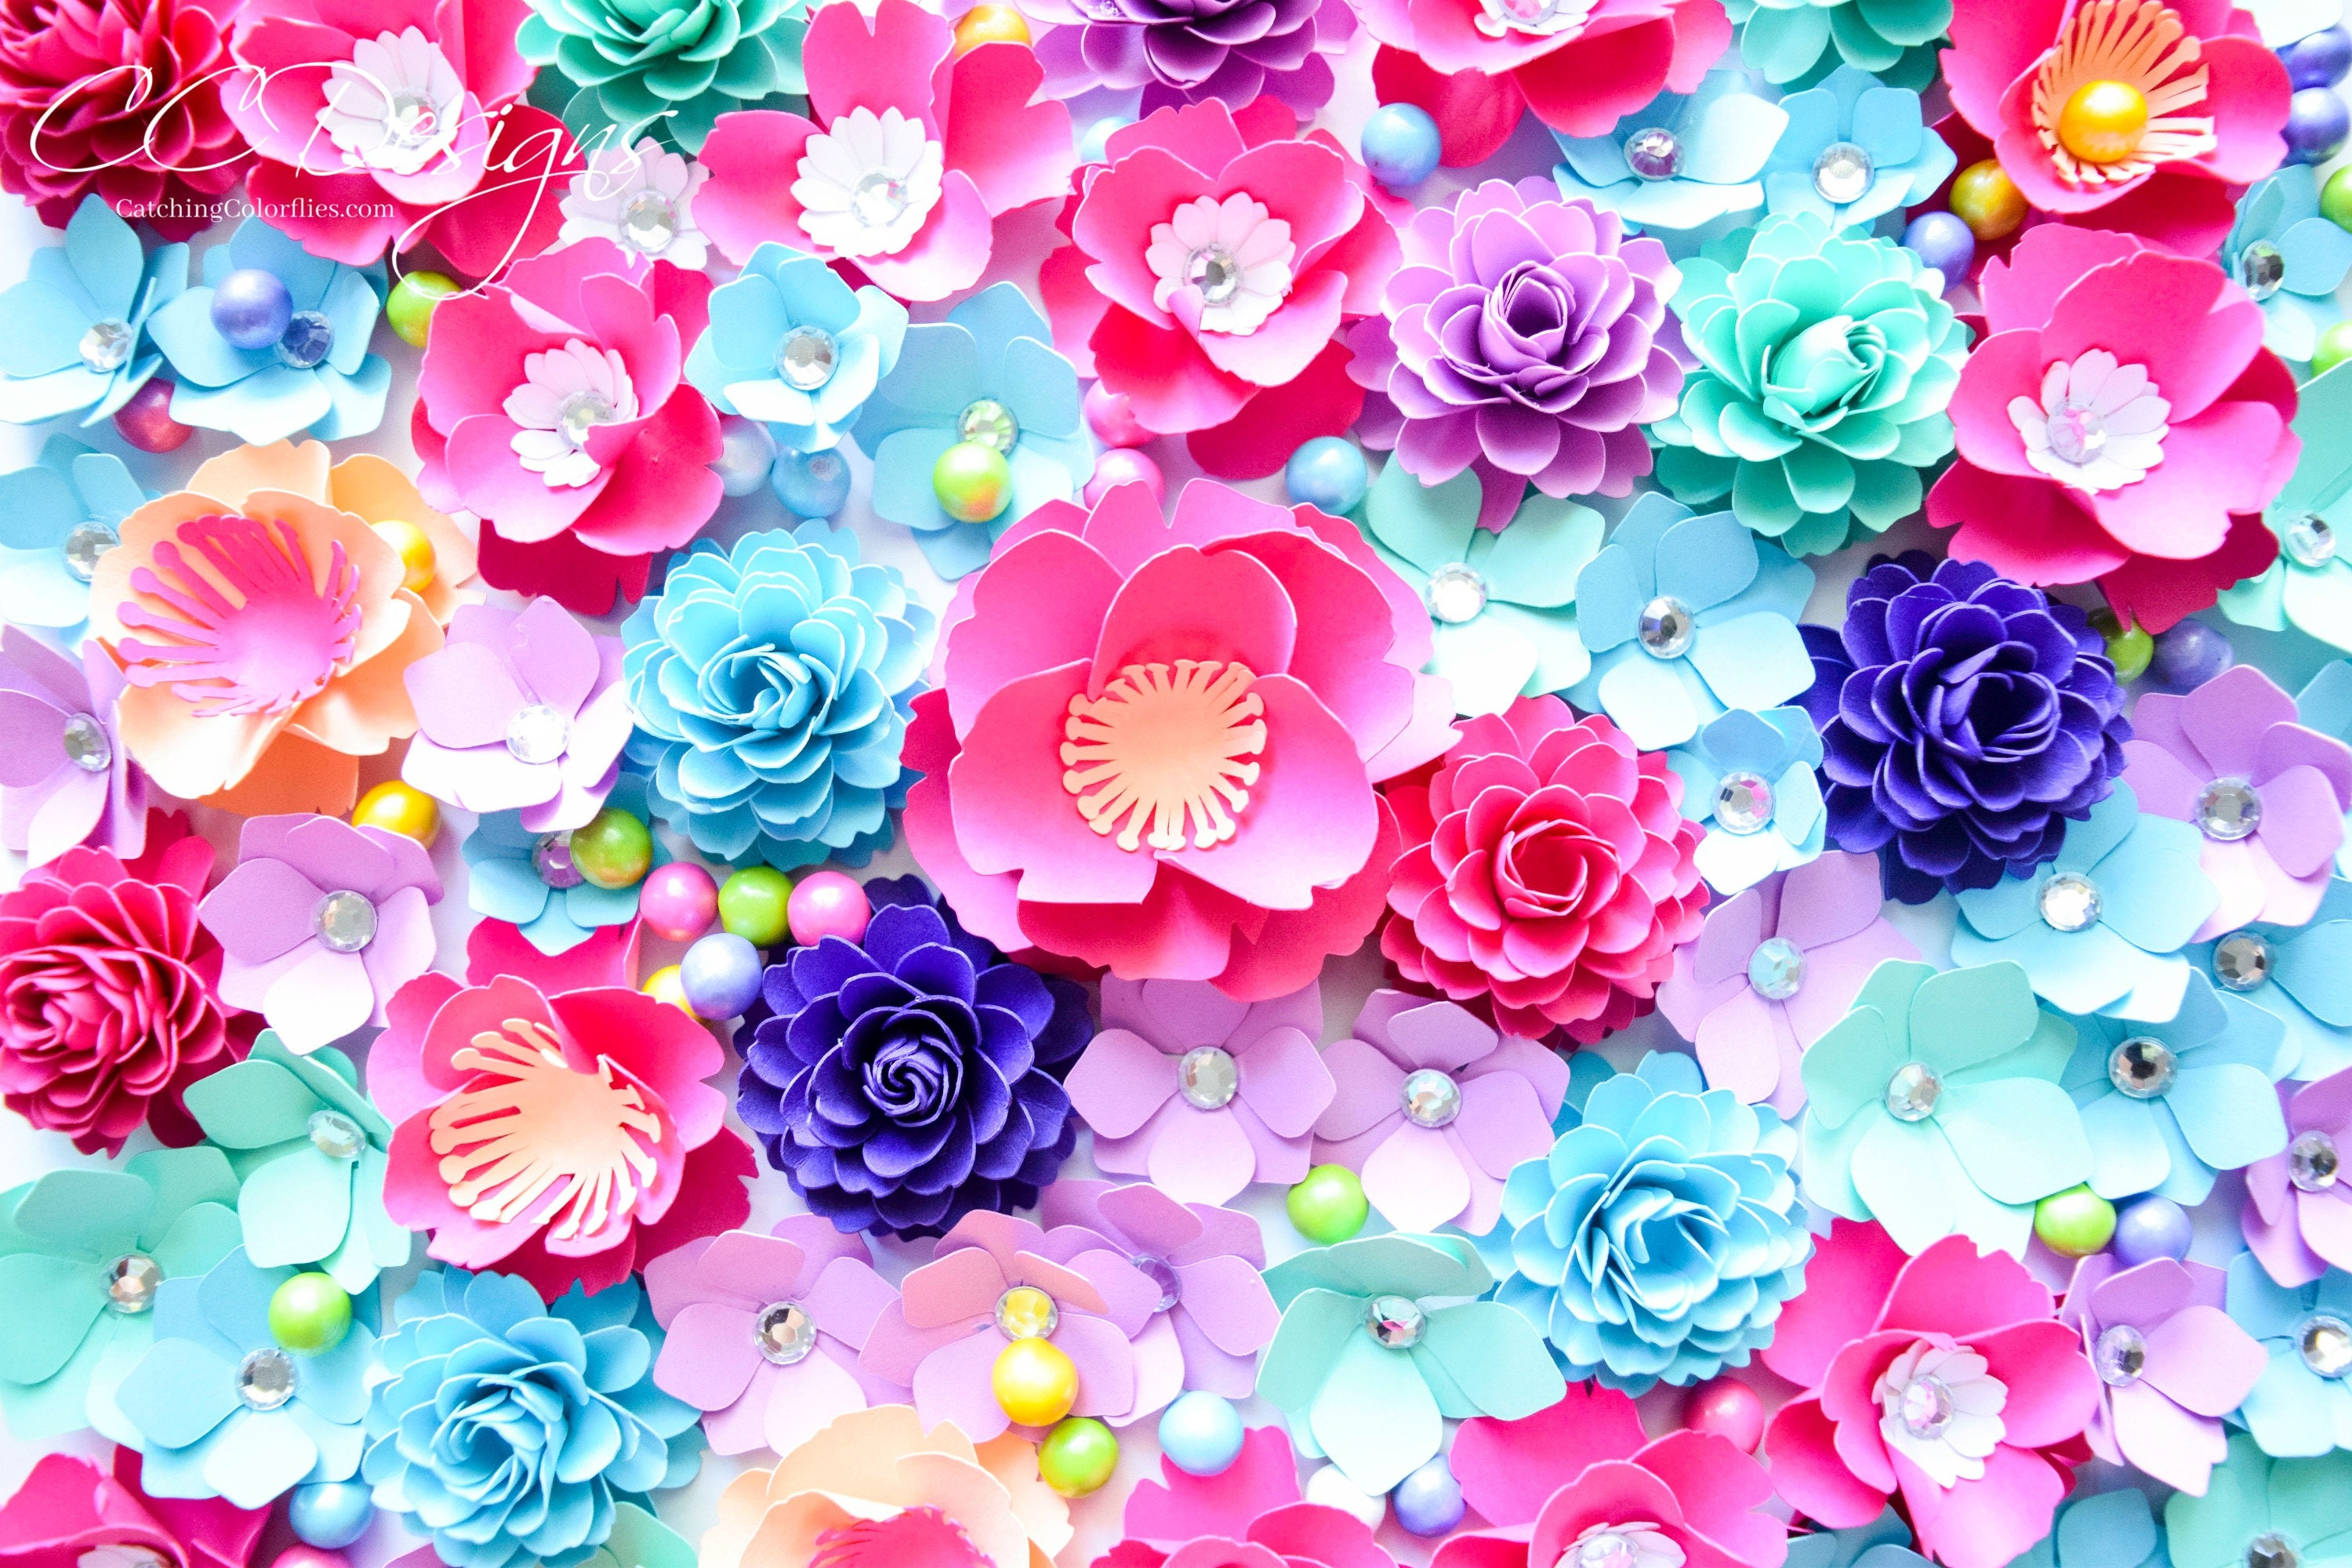 small paper flowers paper flower svg cut files pink paper